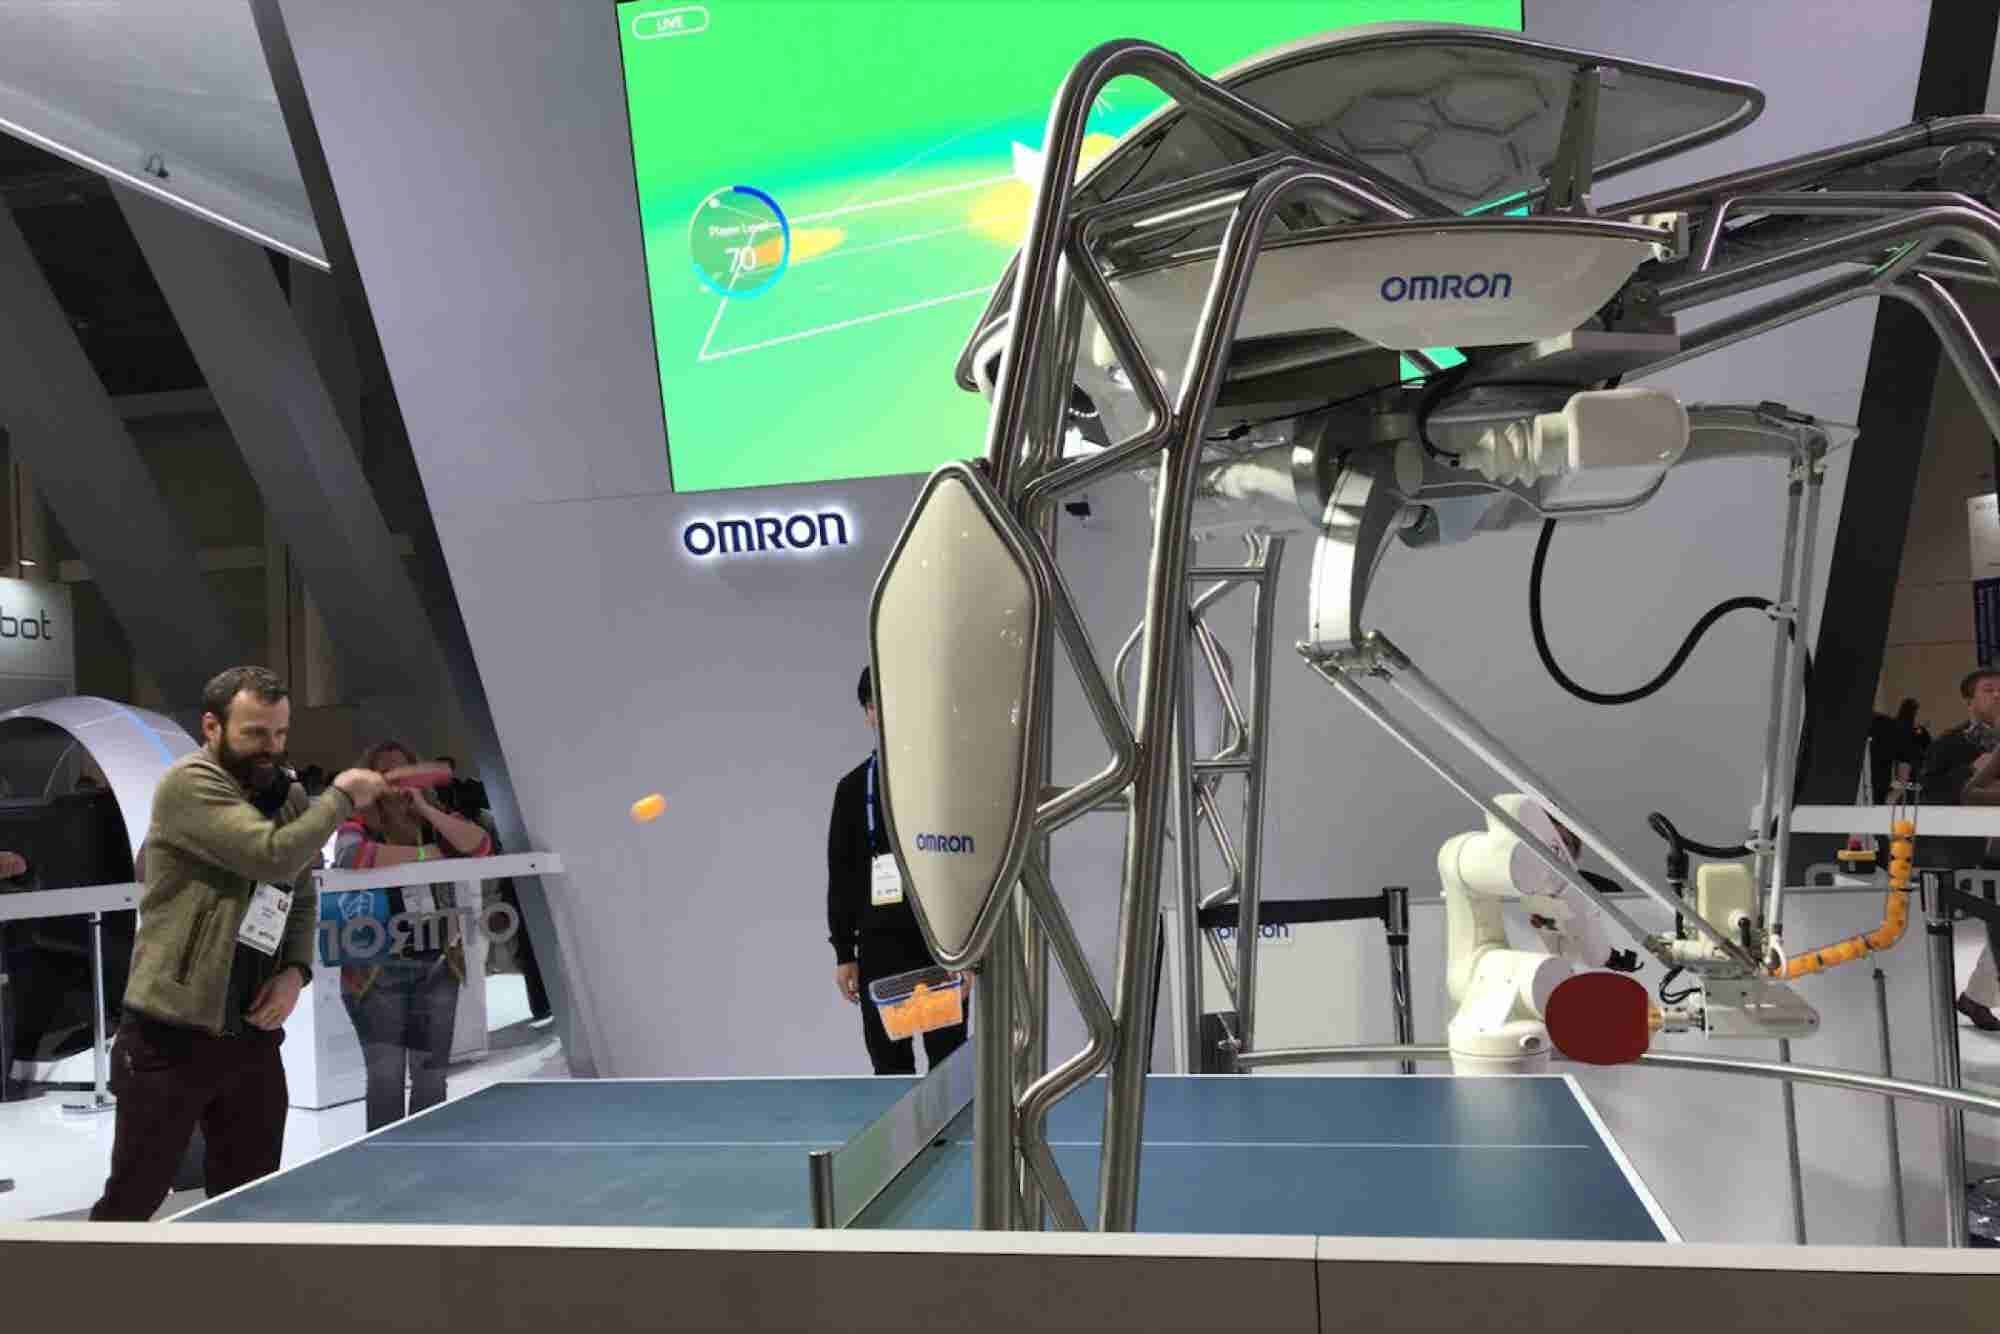 What This Ping-Pong Robot Tells Us About the Next Phase of Human-Robot Interaction